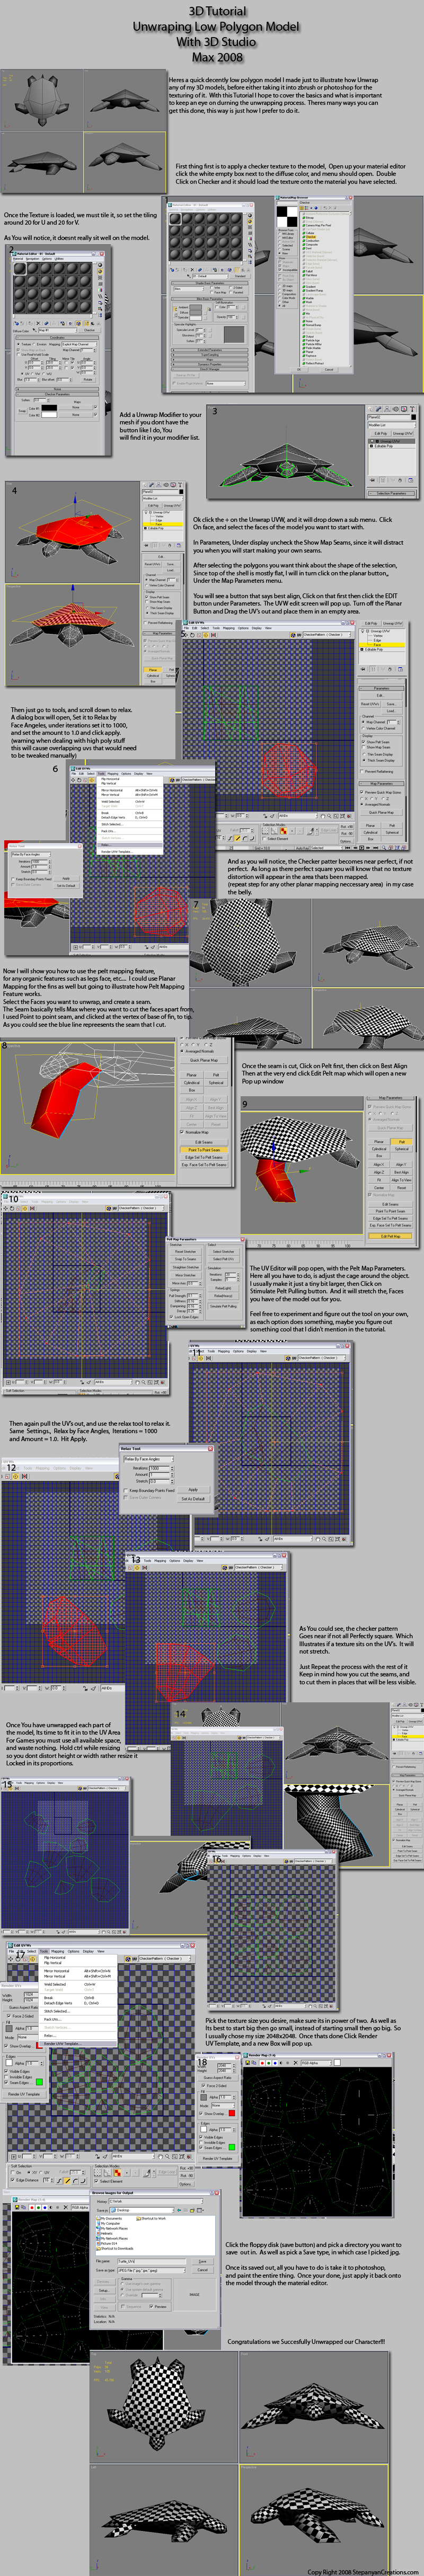 3d max unwrap tutorial by 3d asuarus on deviantart for 3d max tutorial